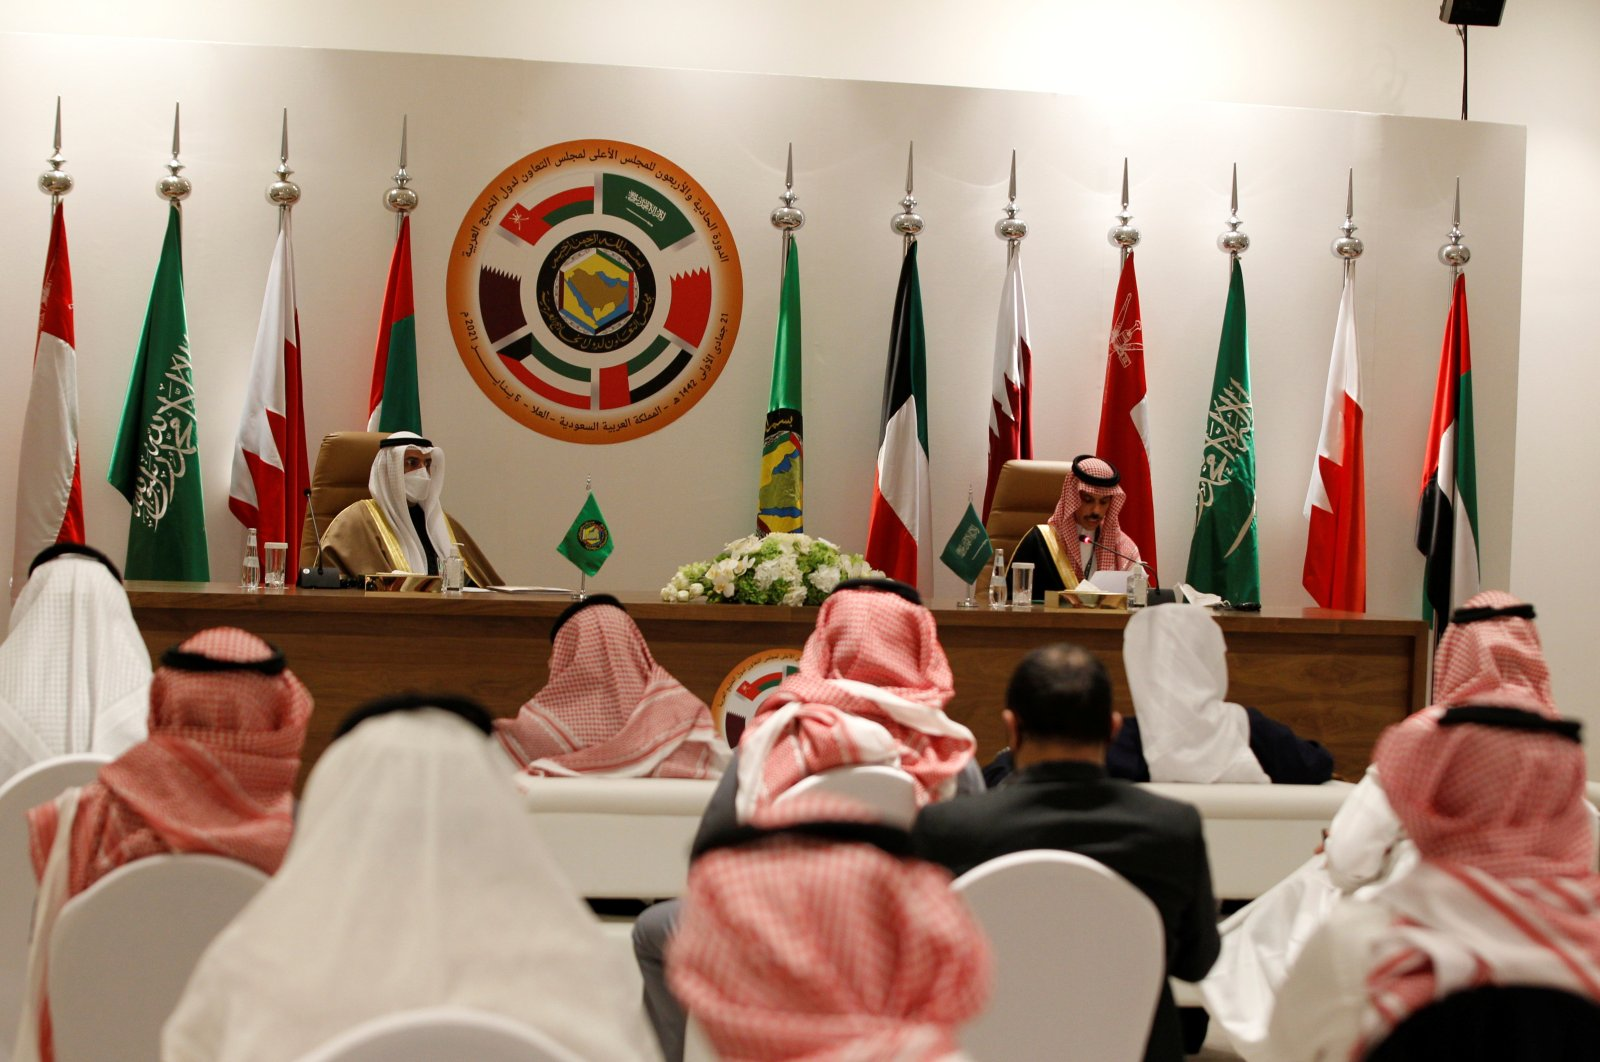 Secretary-General of the Gulf Cooperation Council (GCC) Nayef Falah al-Hajraf and Saudi Arabia's Foreign Minister Prince Faisal bin Farhan Al Saud speak during a joint news conference at the Gulf Cooperation Council's (GCC) 41st Summit in Al-Ula, Saudi Arabia on Jan. 5, 2021. (Reuters Photo)